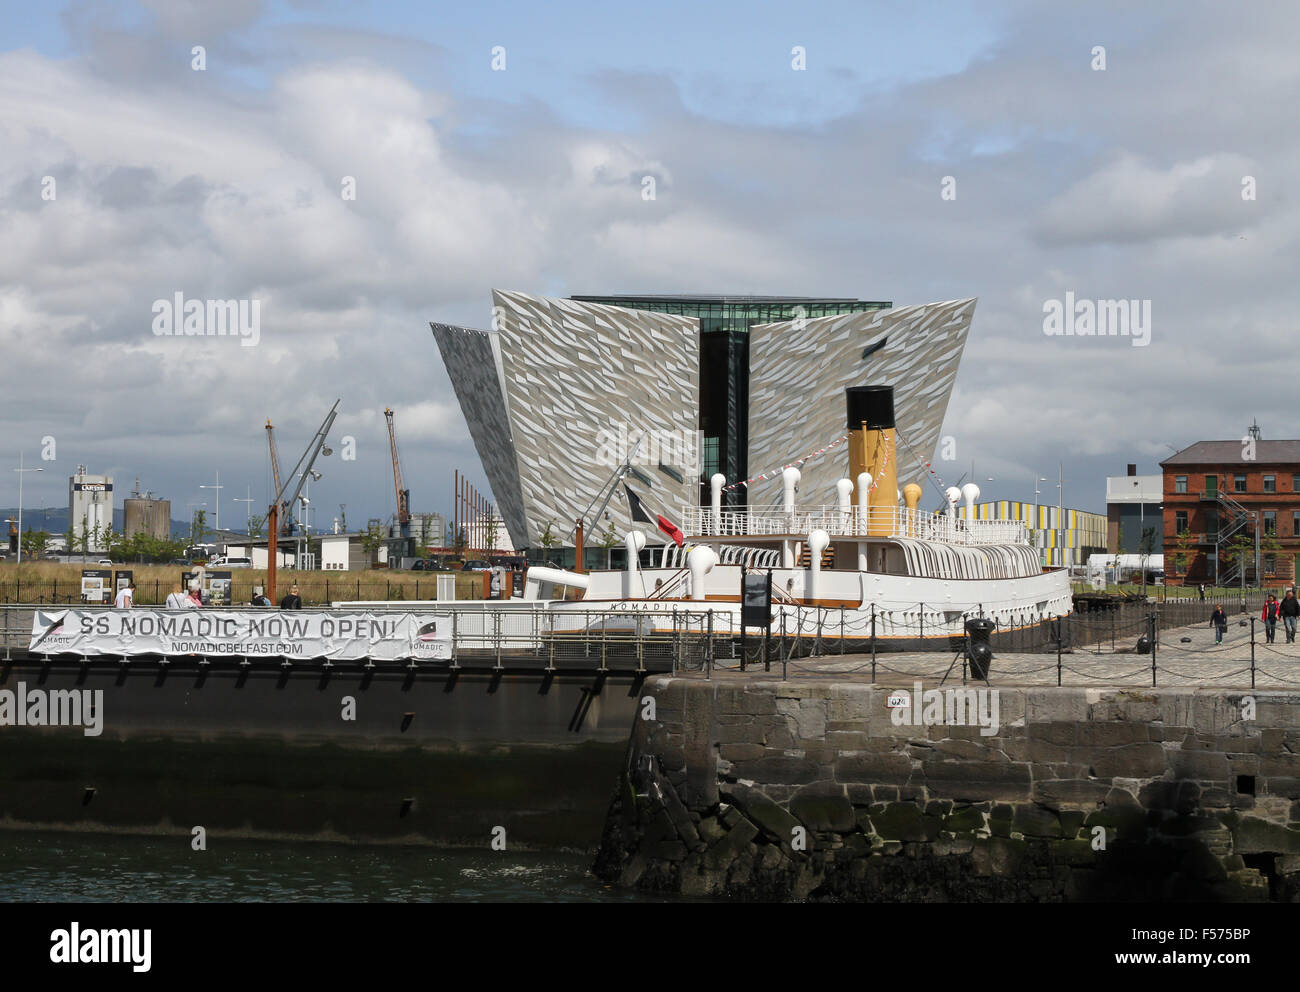 The SS Nomadic in Hamilton Dock, Belfast with The Titanic Visitors' Centre in the background. - Stock Image